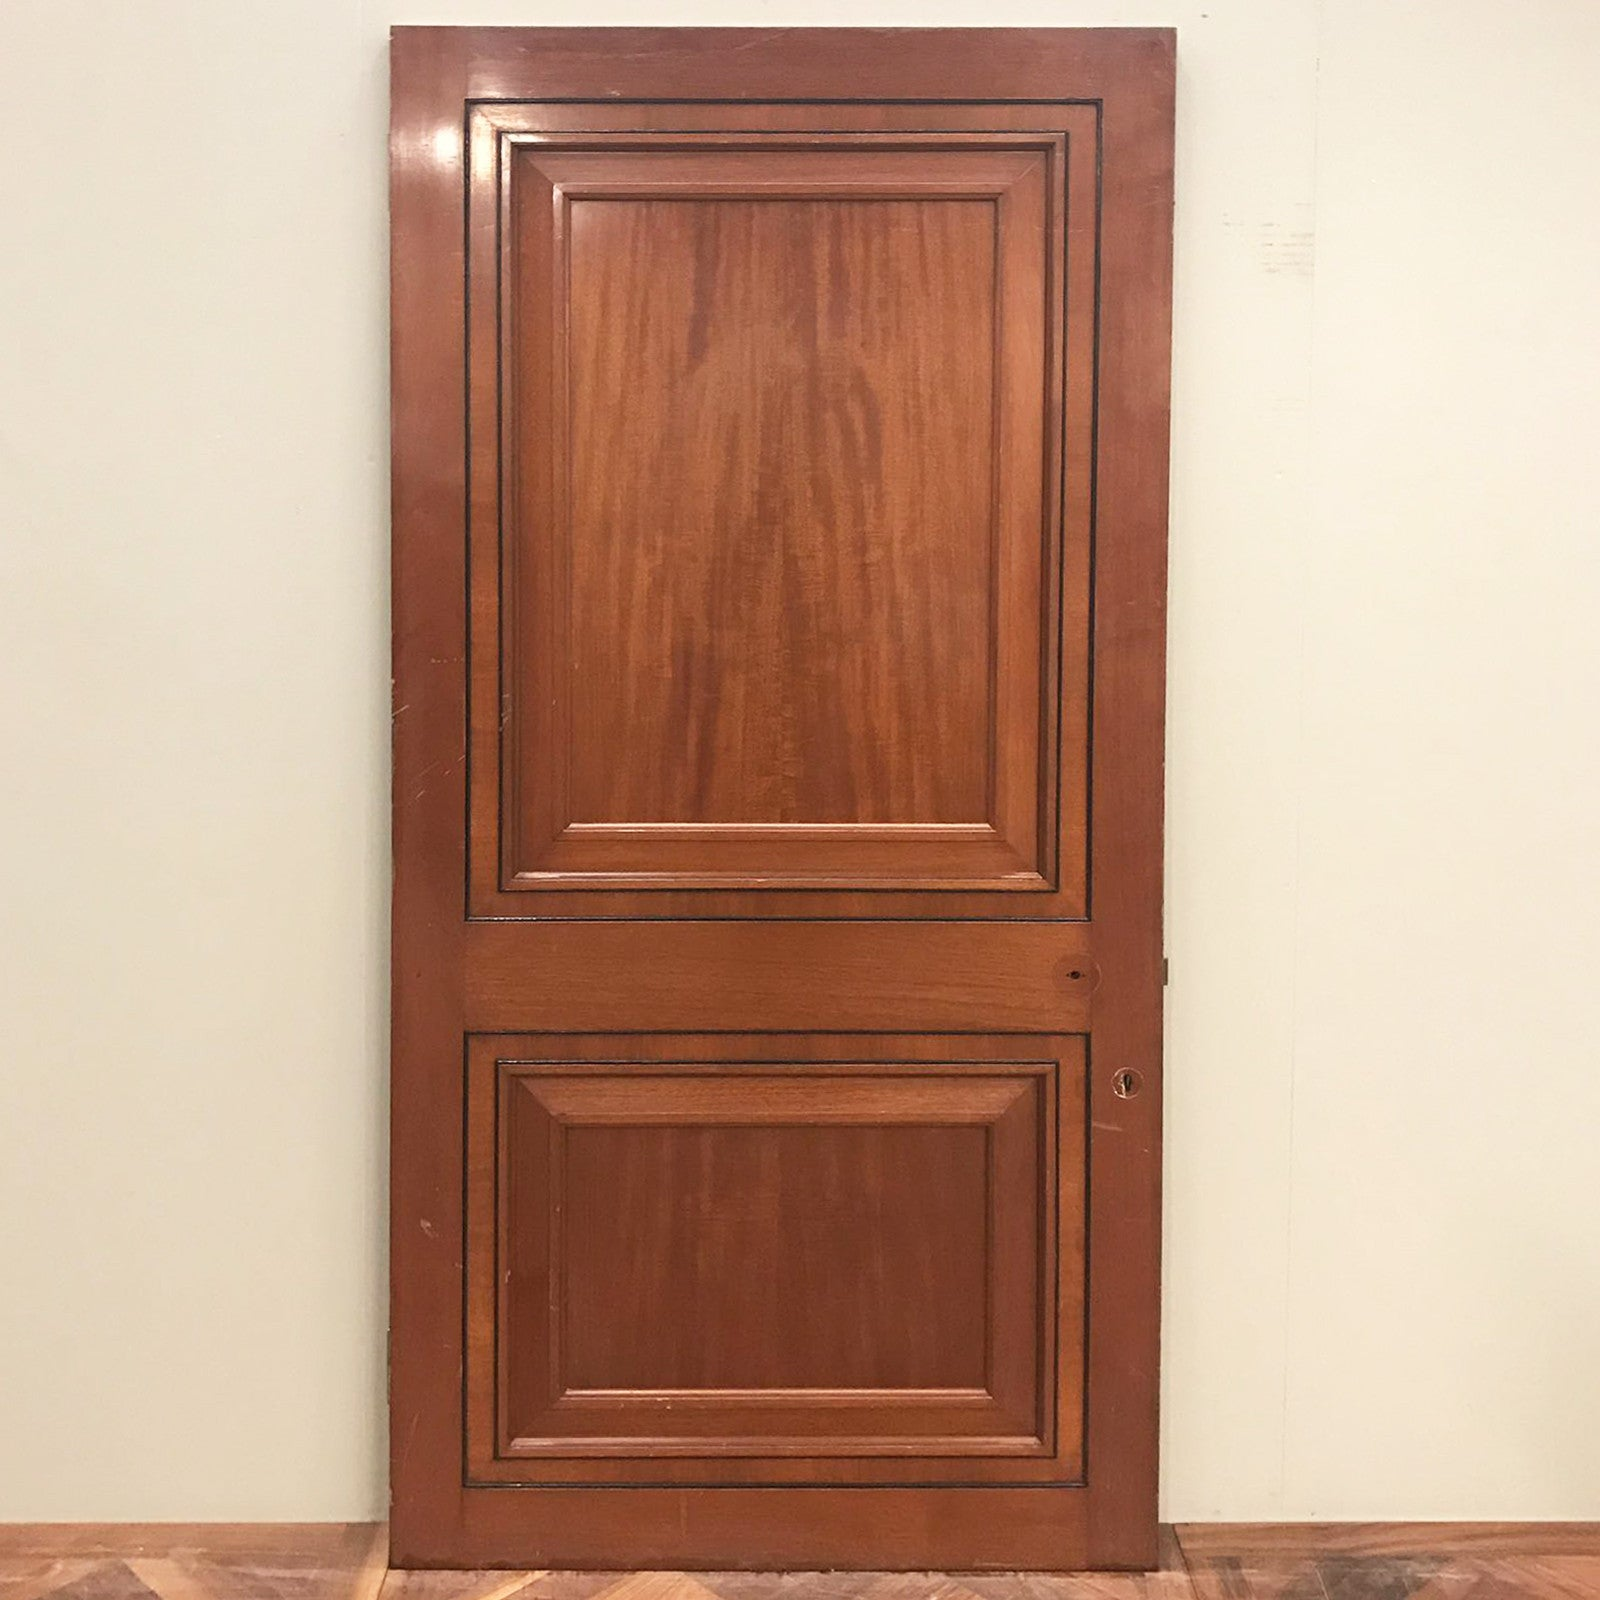 Reclaimed Art Deco Panelled Mahogany Door - 207cm x 98.5cm x 4.5cm - architectural-forum